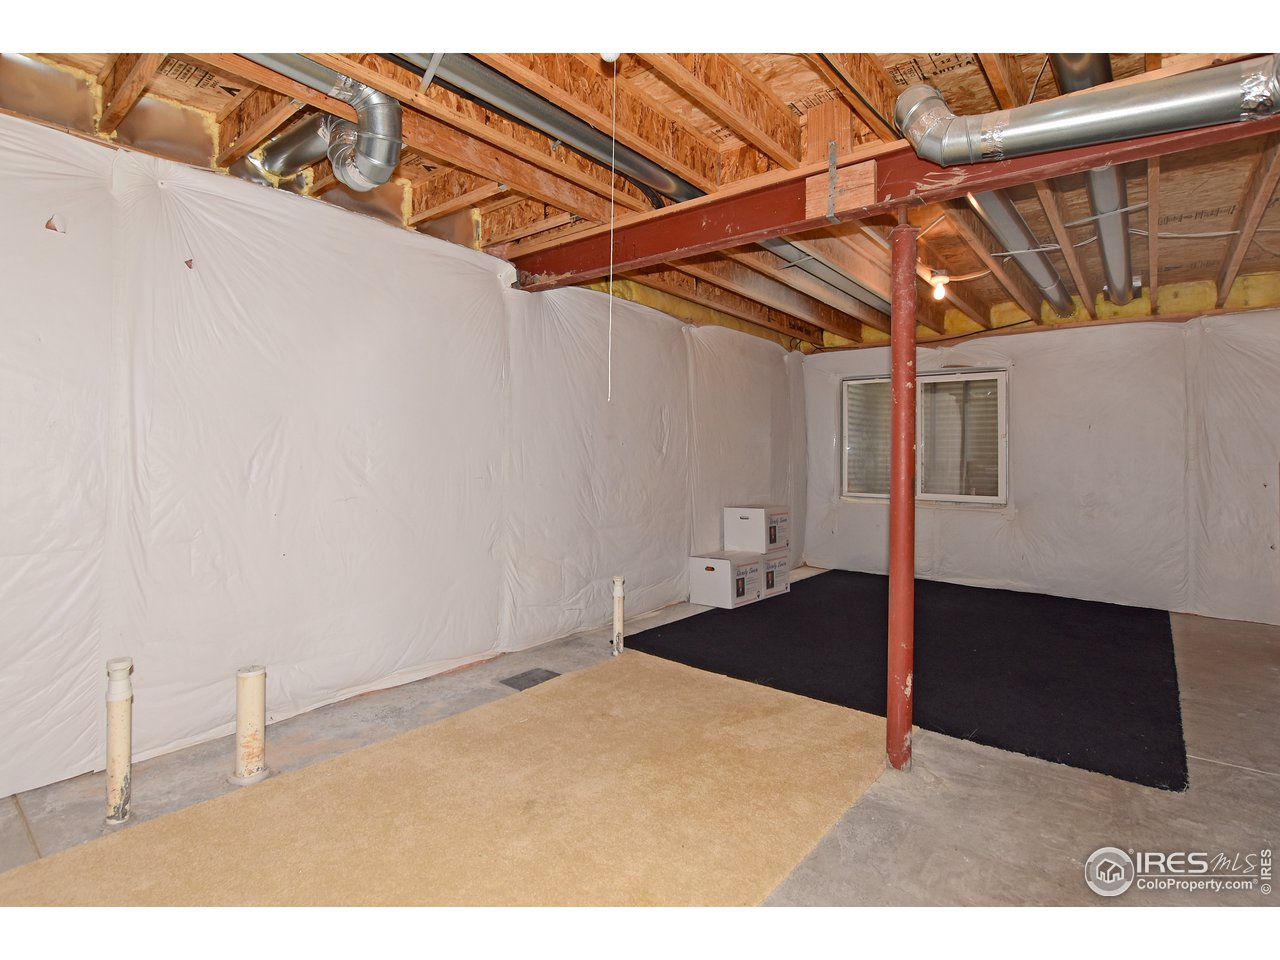 Rough-in plumbing in basement for future expansion.